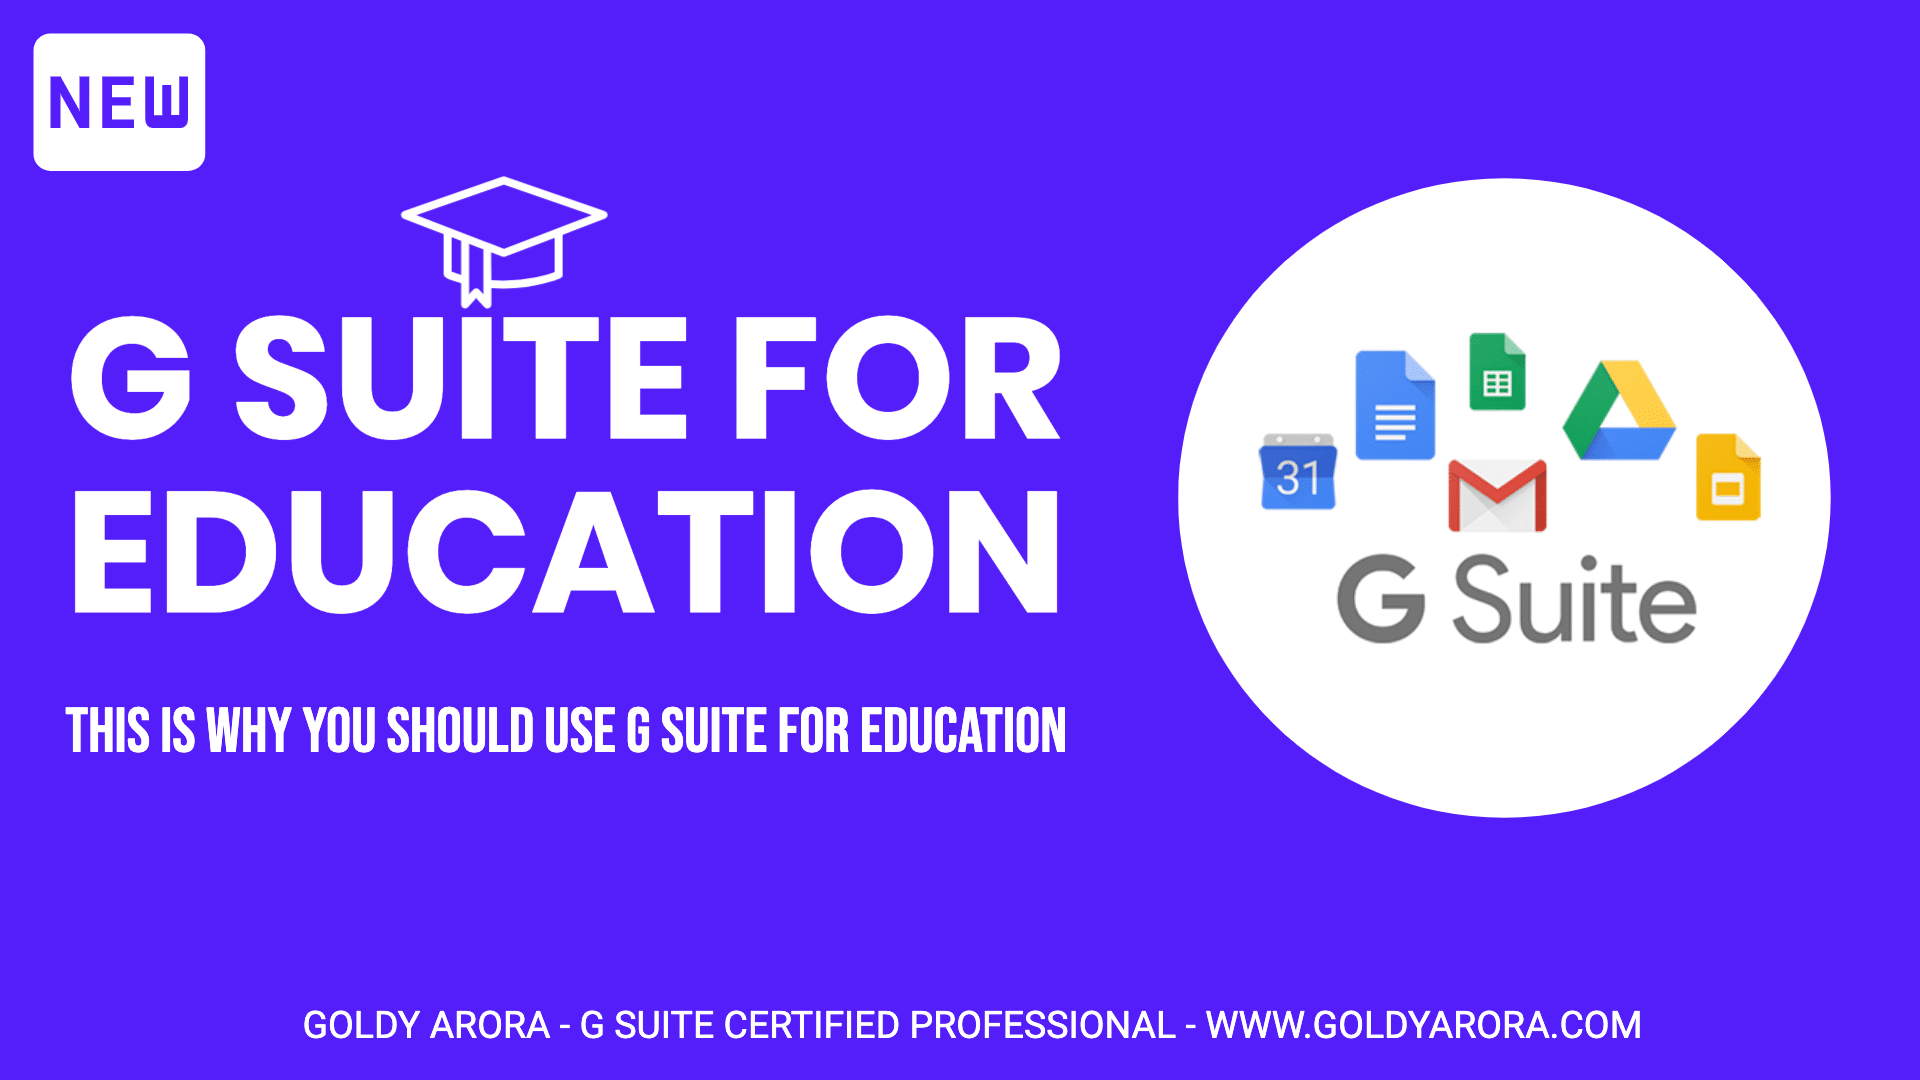 This is Why You Should Use G Suite for Education